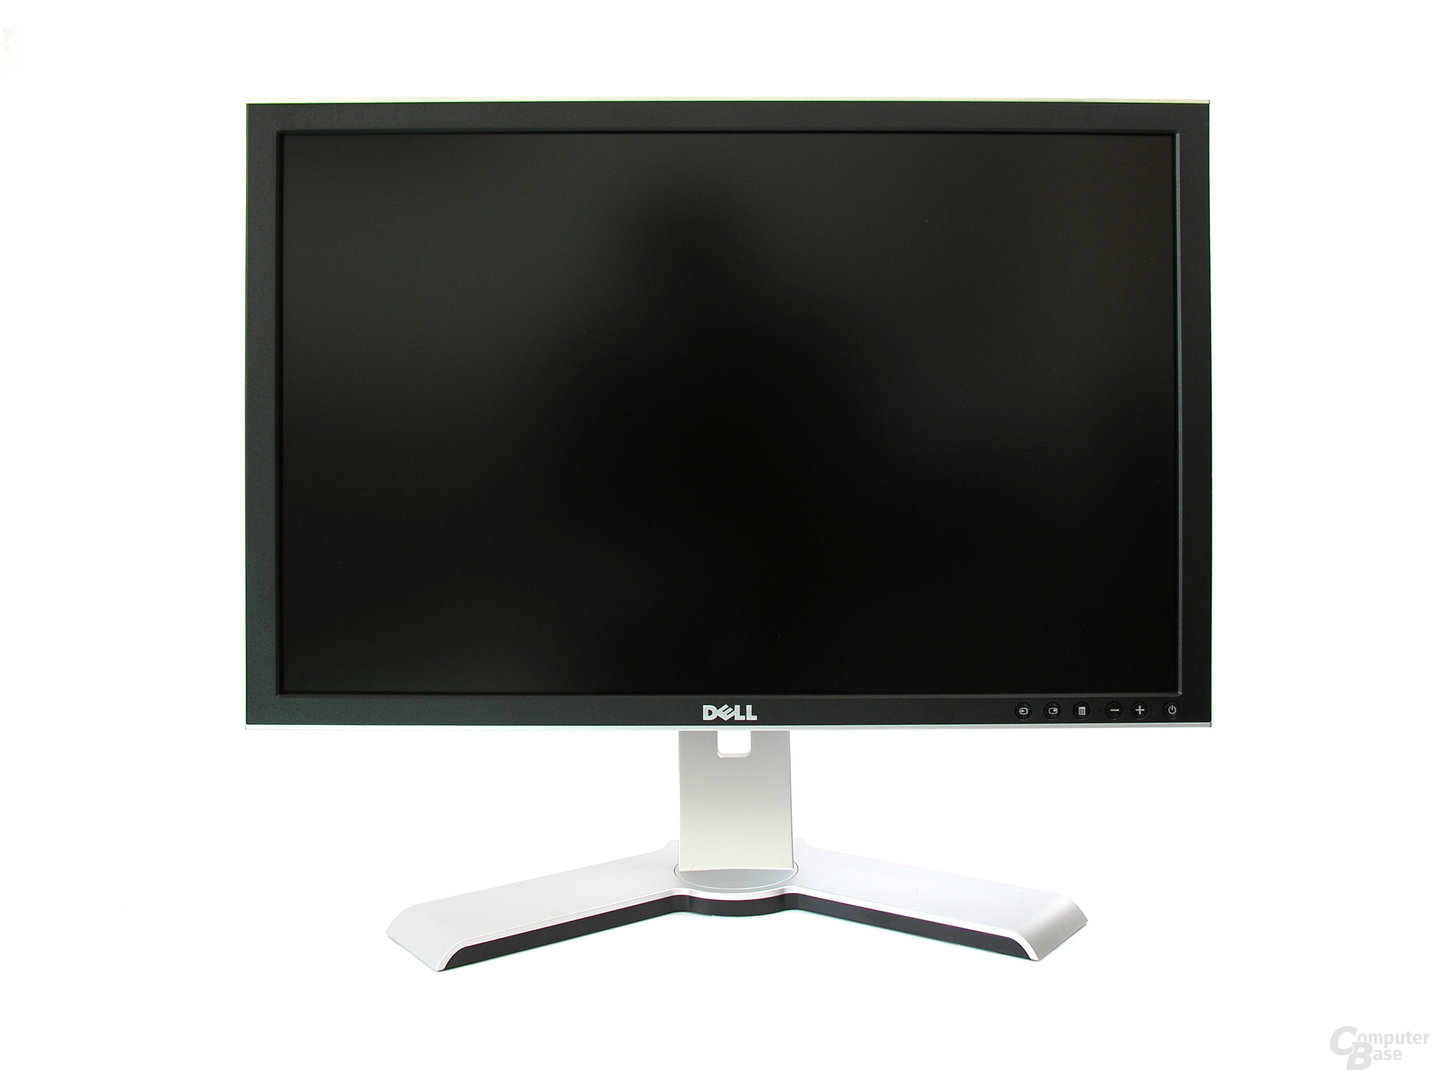 Dell UltraSharp WFP2408